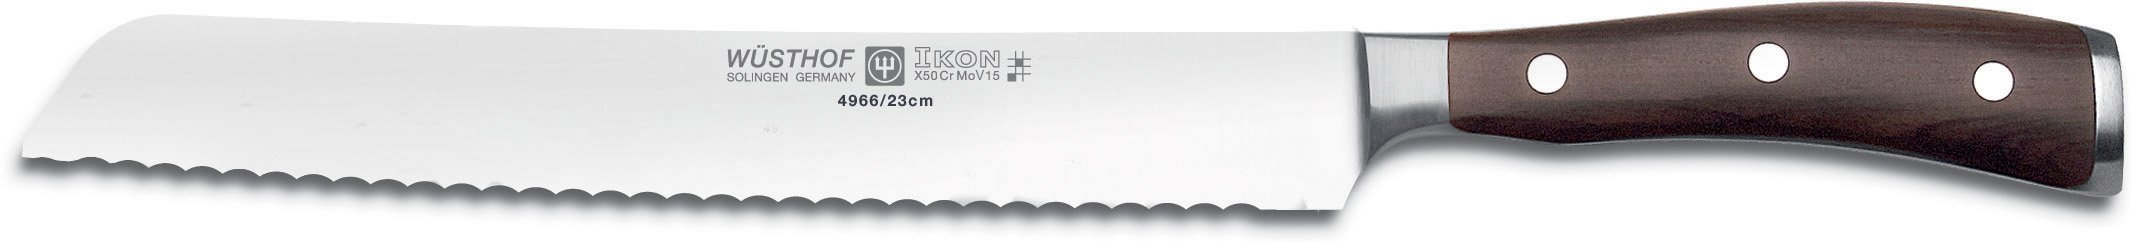 "Wusthof Ikon 9"" Serrated Bread Knife 4966/23"